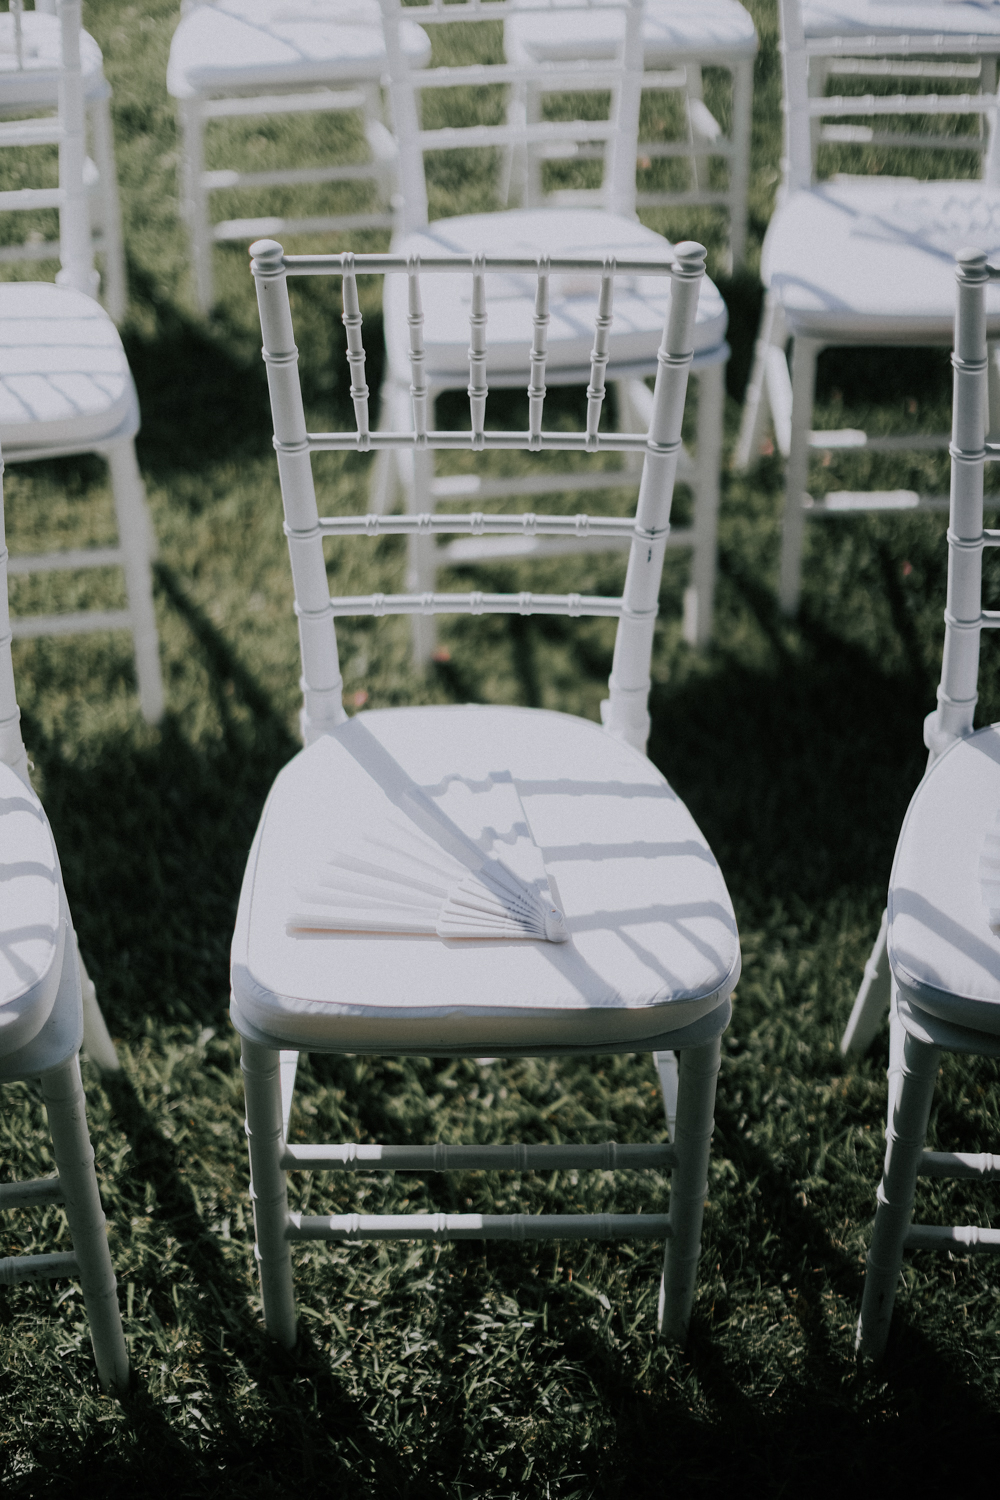 https://www.weddingamalfi.com/wp-content/uploads/Alessandro-and-Diego-wedding-chair-decoration.jpg